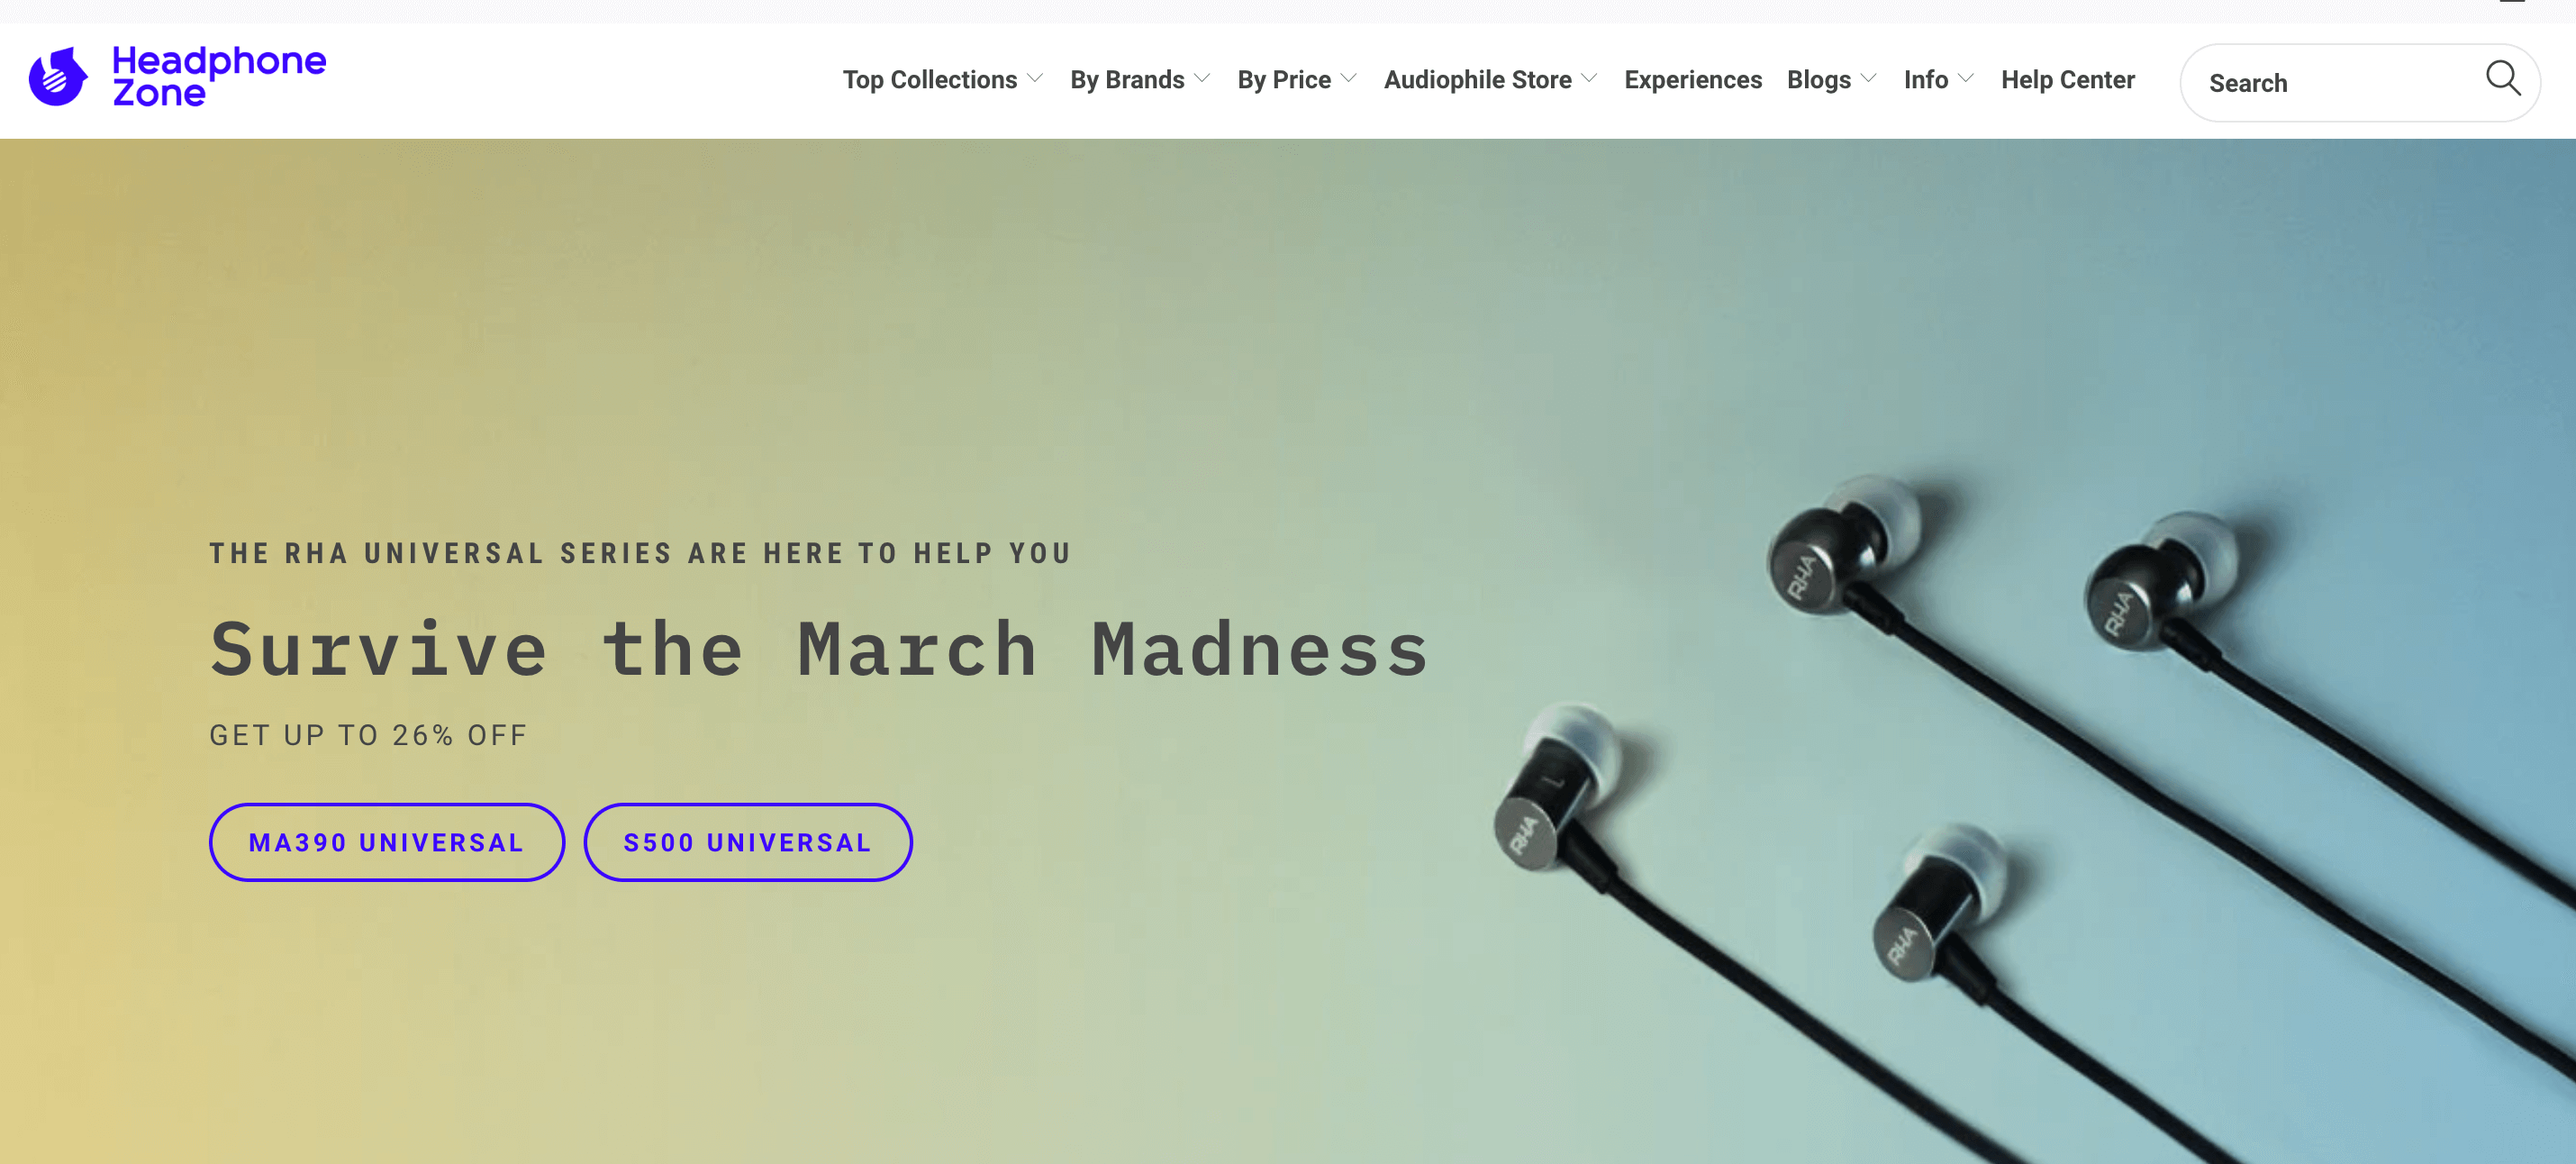 Headphone zone homepage 2020